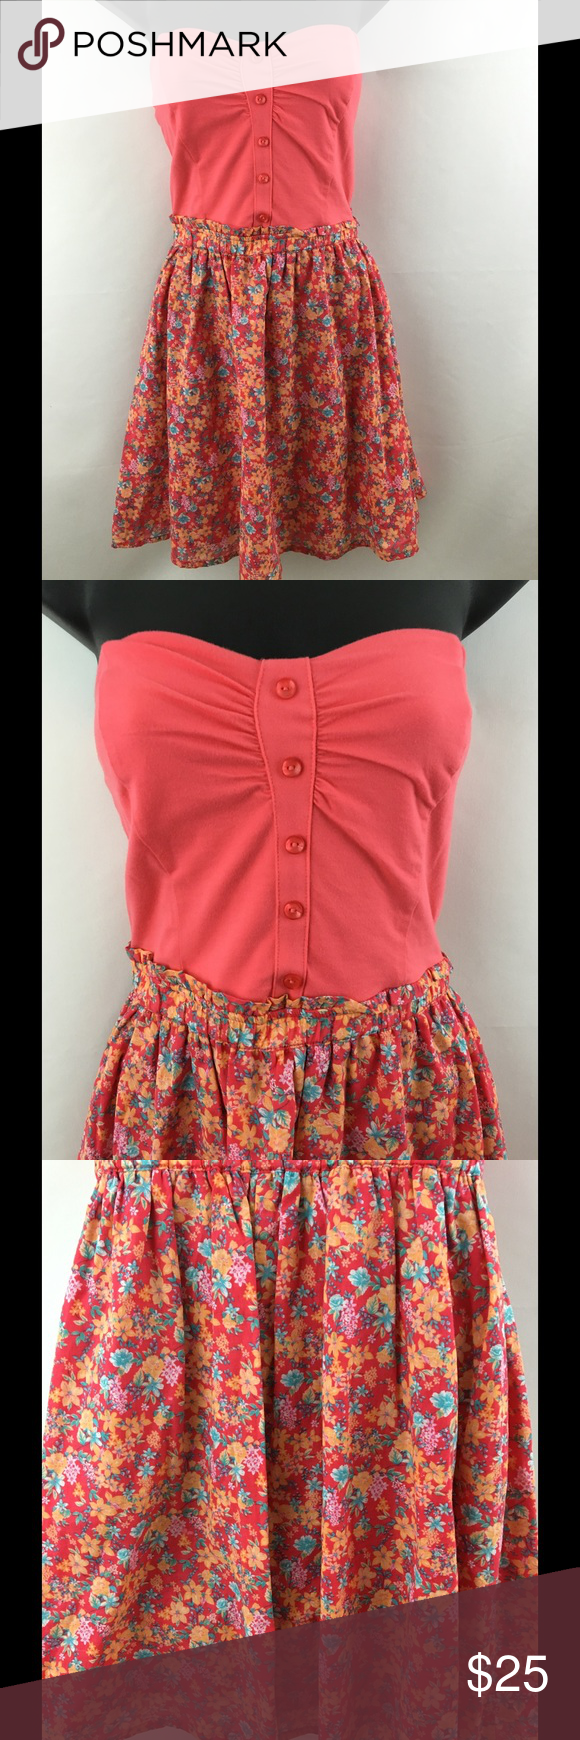 Strapless coral floral dress size M This is a very cute strapless dress by Bershka Collection it has a coral colored shirt op with a faux button up look. Skirt is a floral pattern in a mix of blue, yellow, pink and white. Size Medium Bershka Dresses Strapless